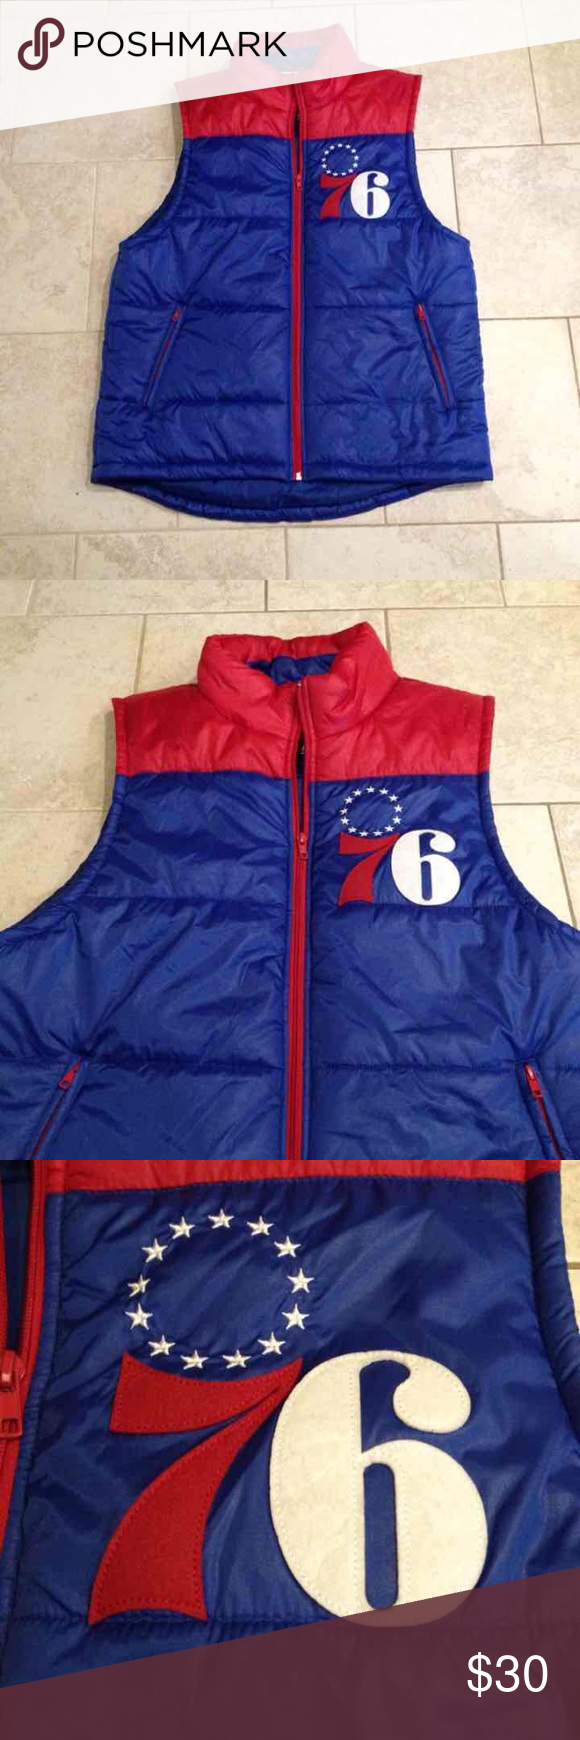 Mitchell & Ness 76ers Vest NWOT Large New without tag, never worn. Has no flaws at all. Size Large in men's. Mitchell & Ness Jackets & Coats Vests